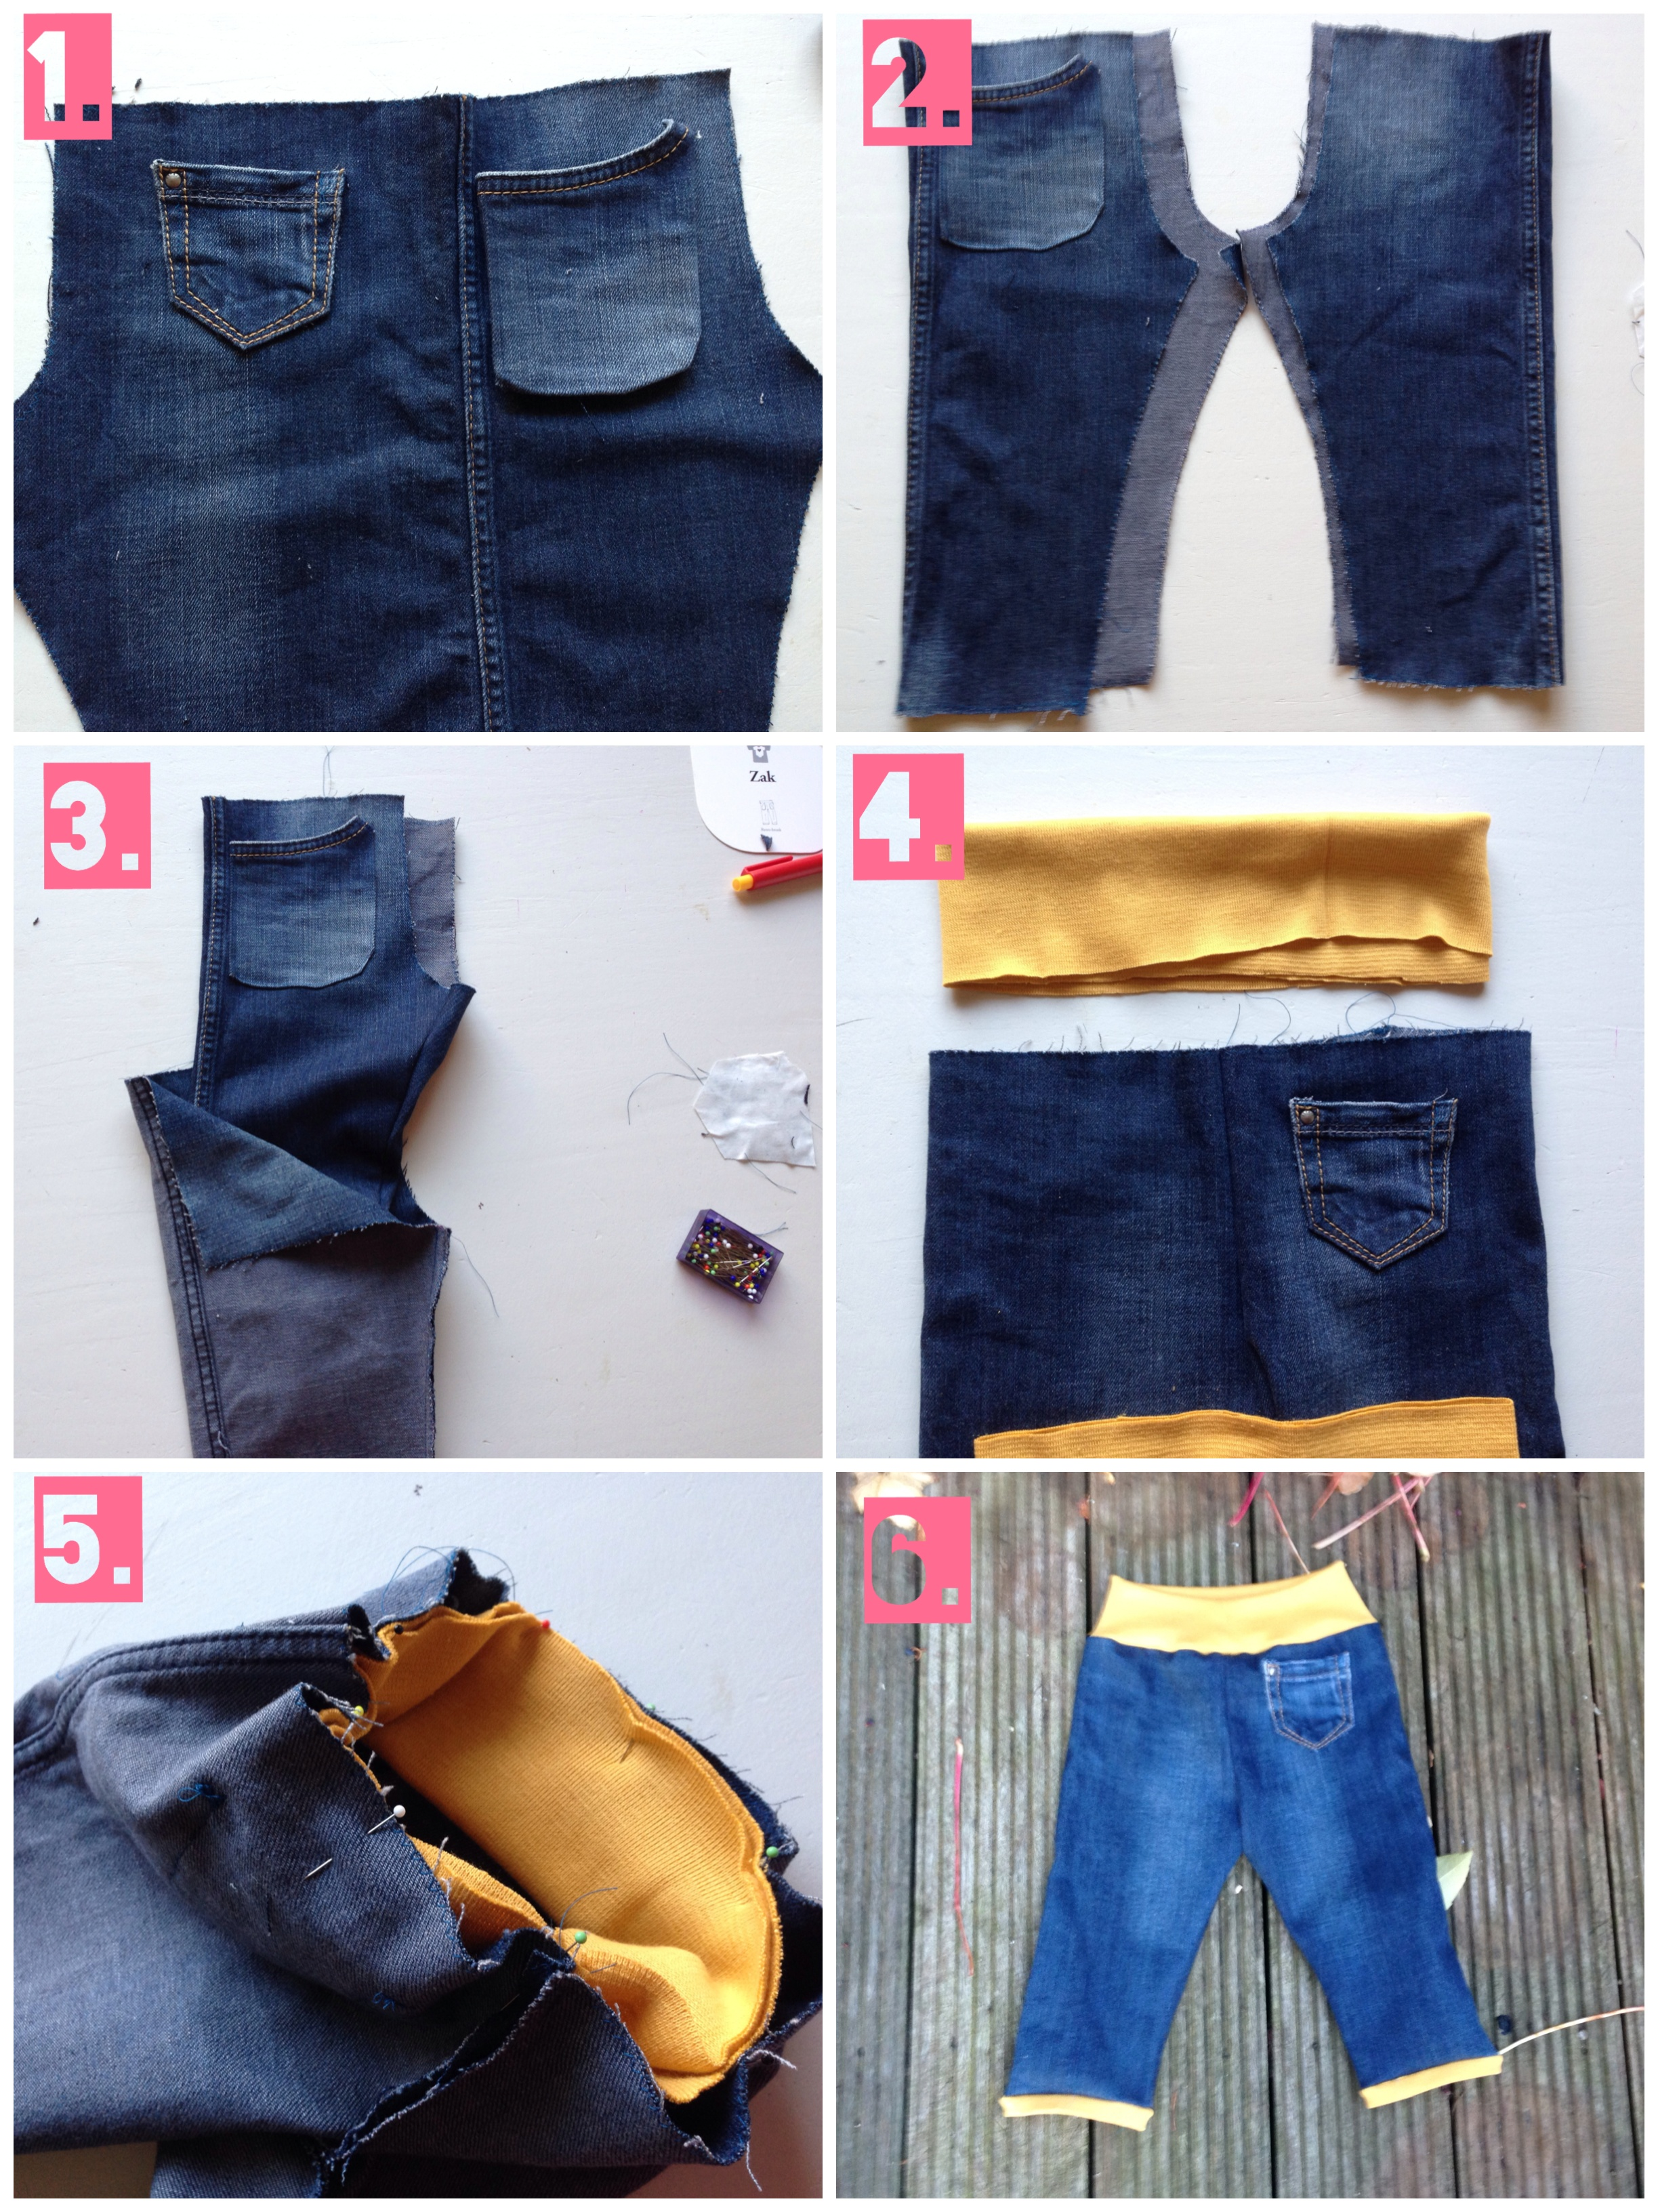 Jeans for kids learn